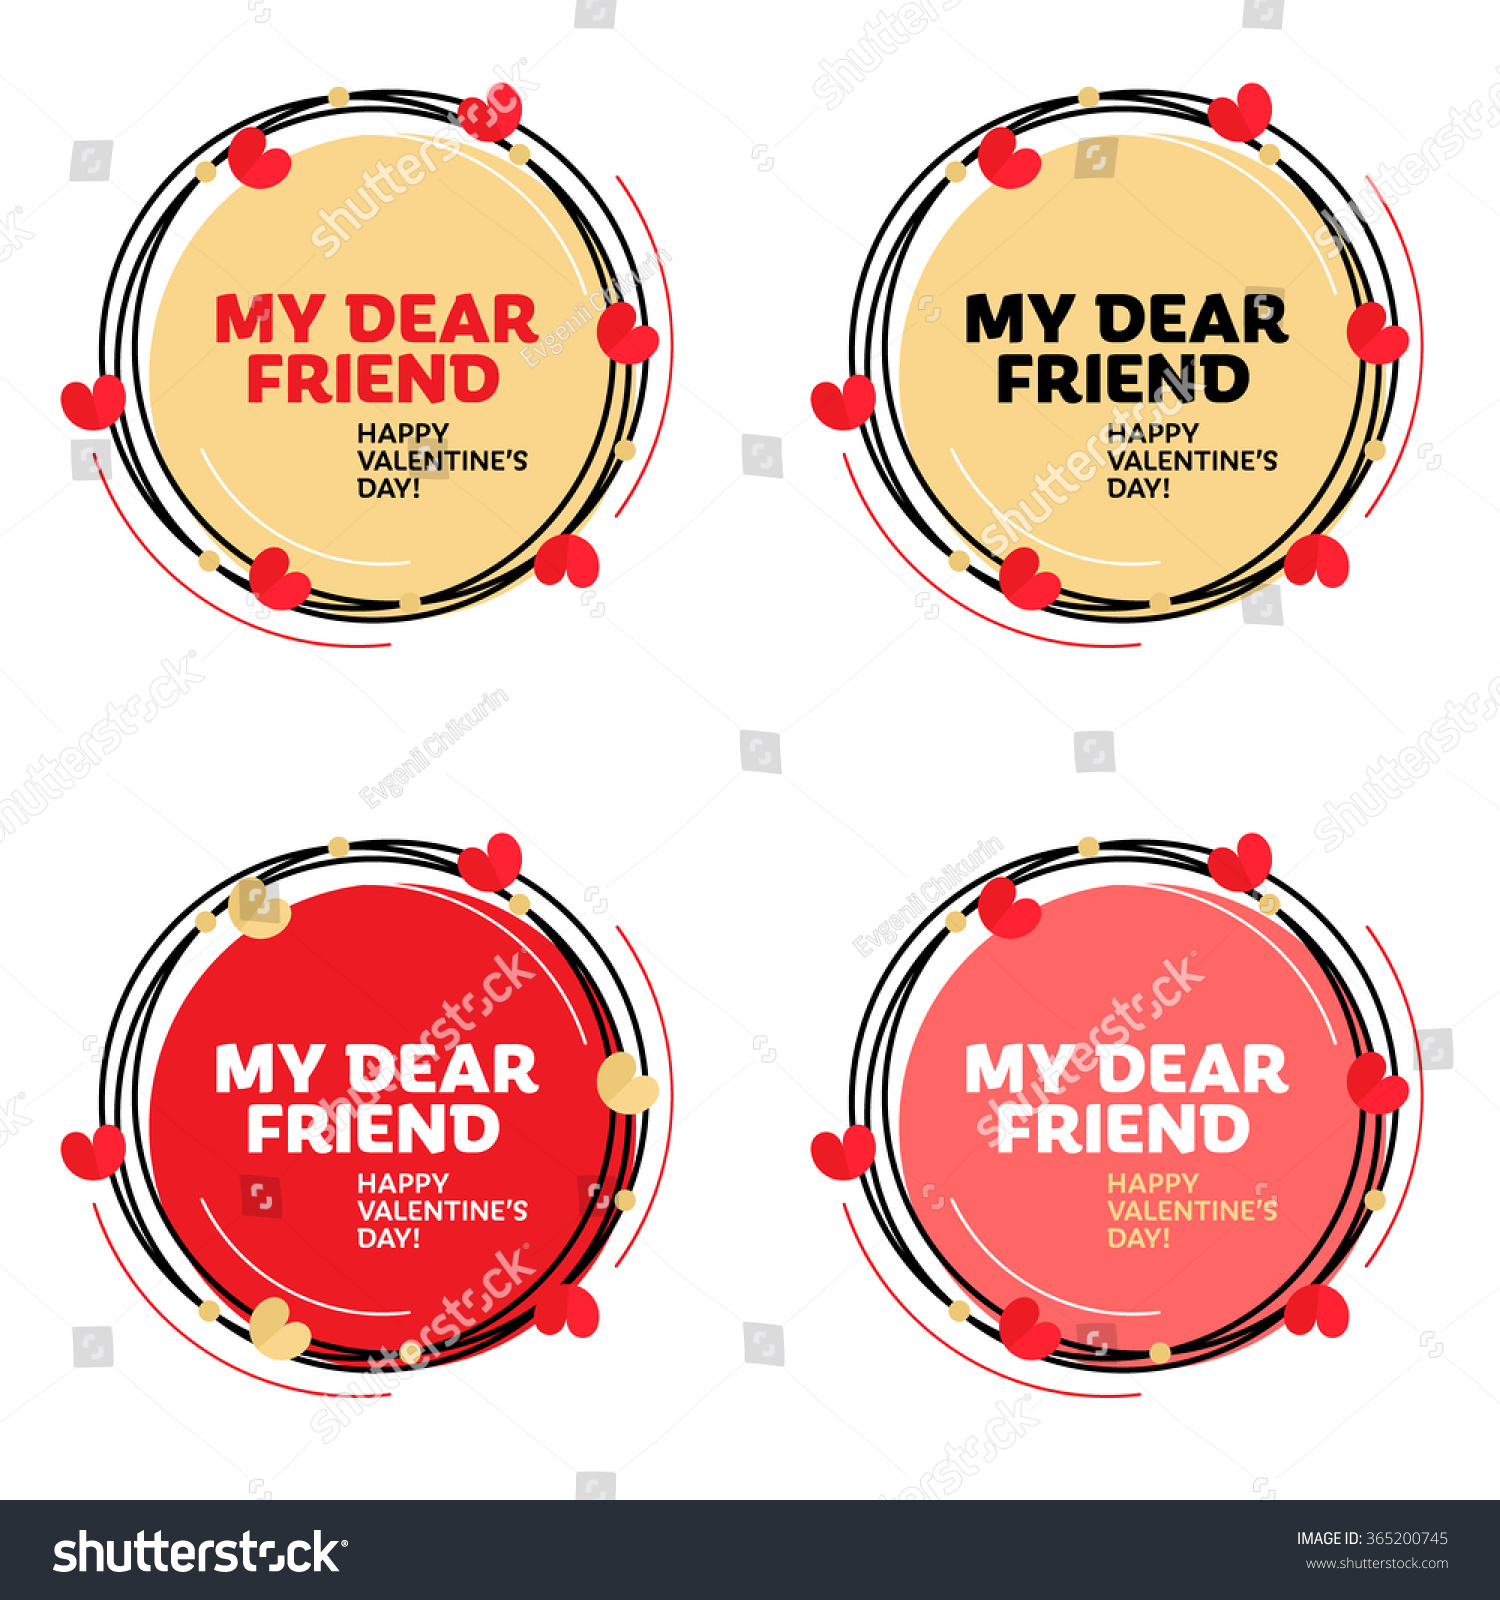 My Dear Friend Happy Valentines Day Illustrations Greeting Card Template With Typographic Vector